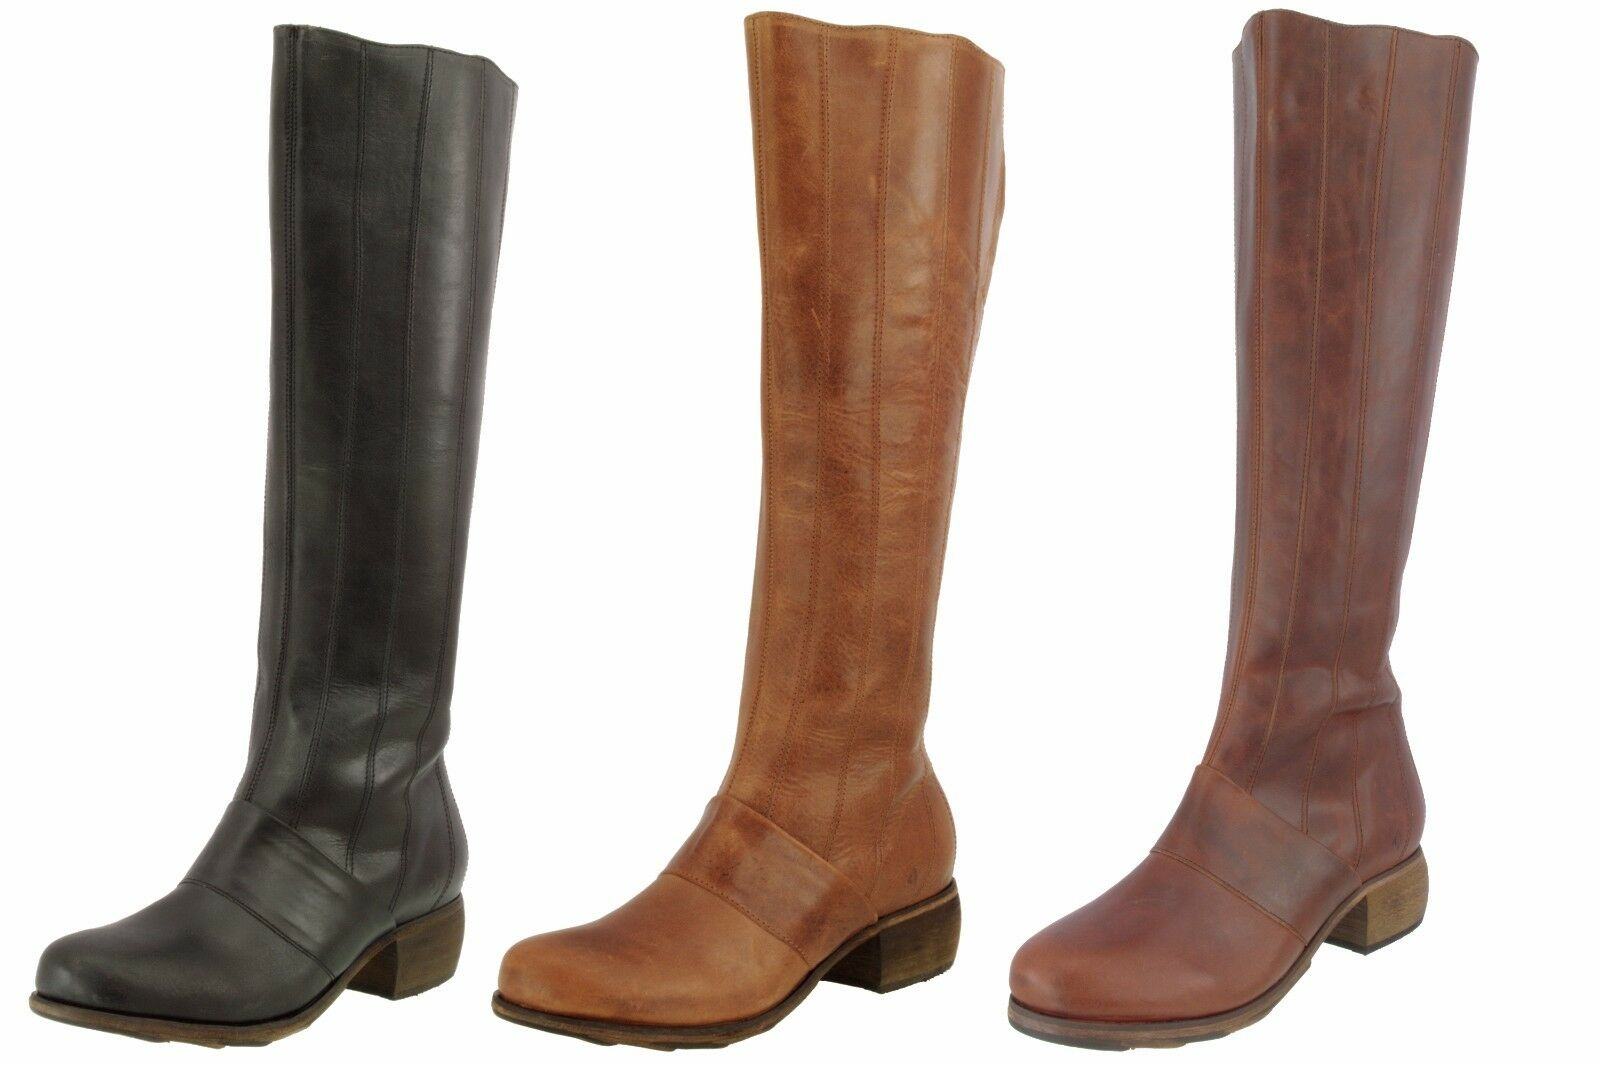 OLUKAI SAMPLE WOMEN'S KUMUKAHI ANTIQUED FULL GRAIN TALL LEATHER  BOOTS  US 7